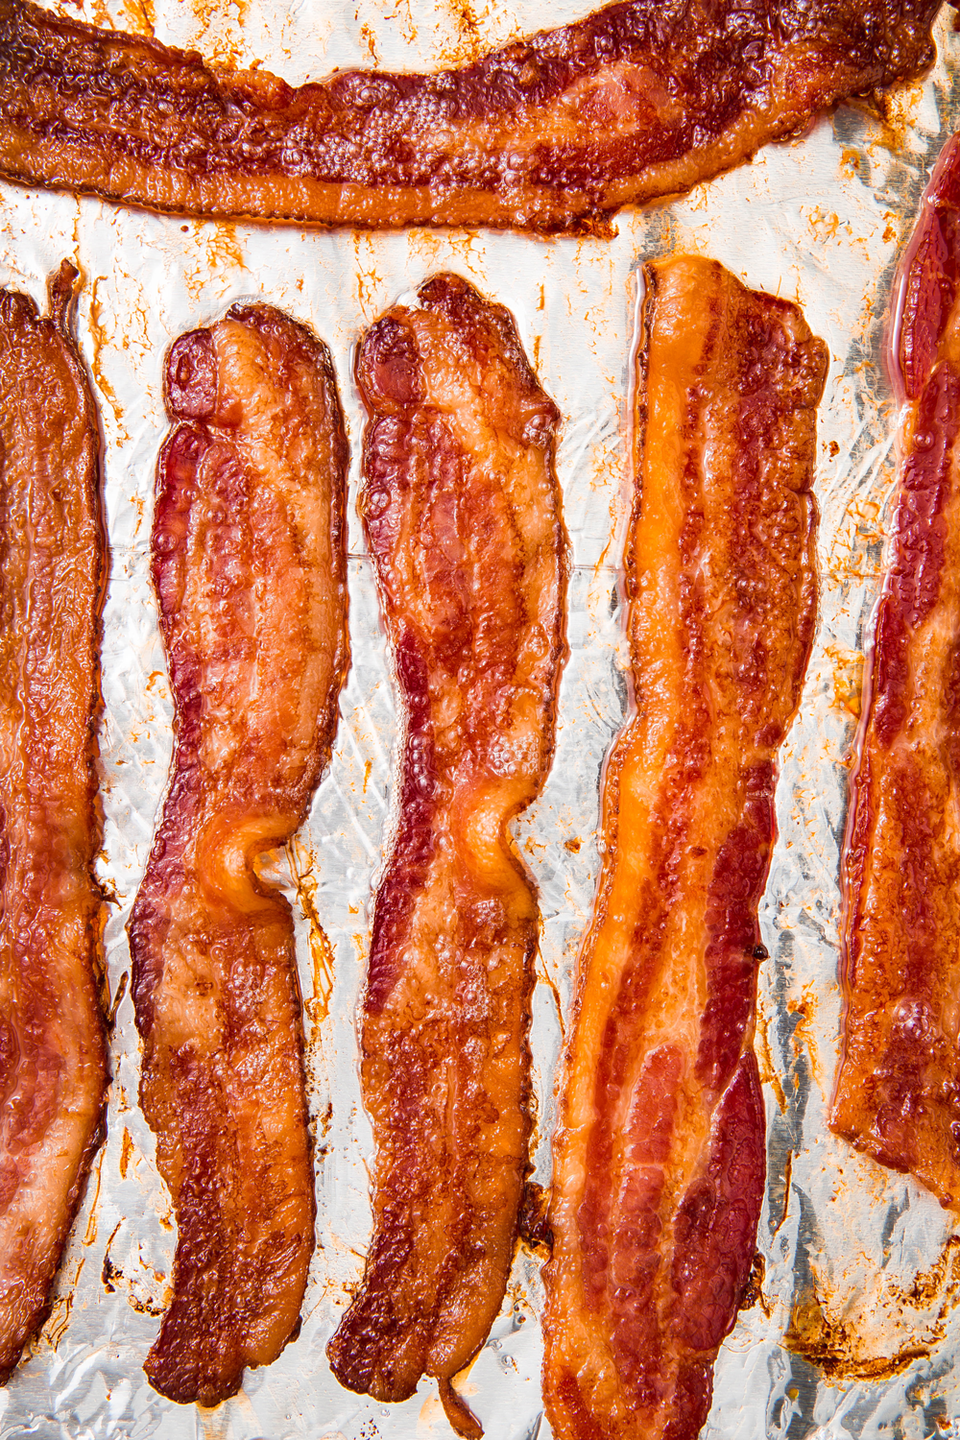 "<p>There is no better way to cook bacon.</p><p>Get the recipe from <a href=""https://www.delish.com/cooking/a22502749/how-to-cook-bacon-in-the-oven-recipe/"" rel=""nofollow noopener"" target=""_blank"" data-ylk=""slk:Delish"" class=""link rapid-noclick-resp"">Delish</a>.</p>"